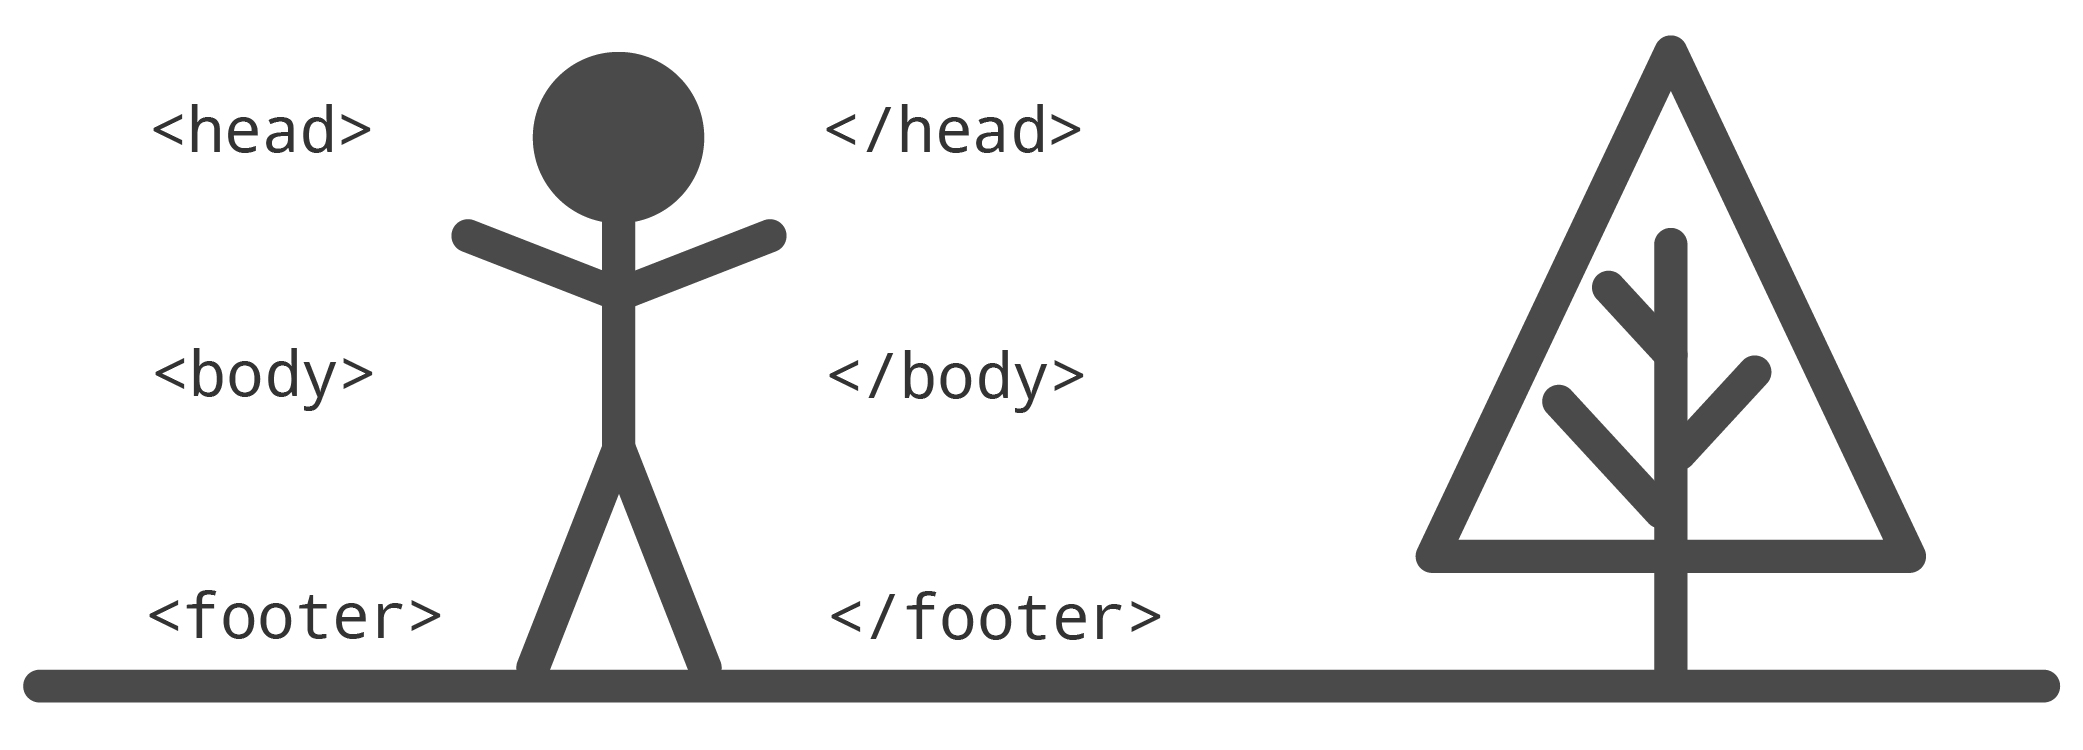 Stick figure labeled with head, body, and footer html tags